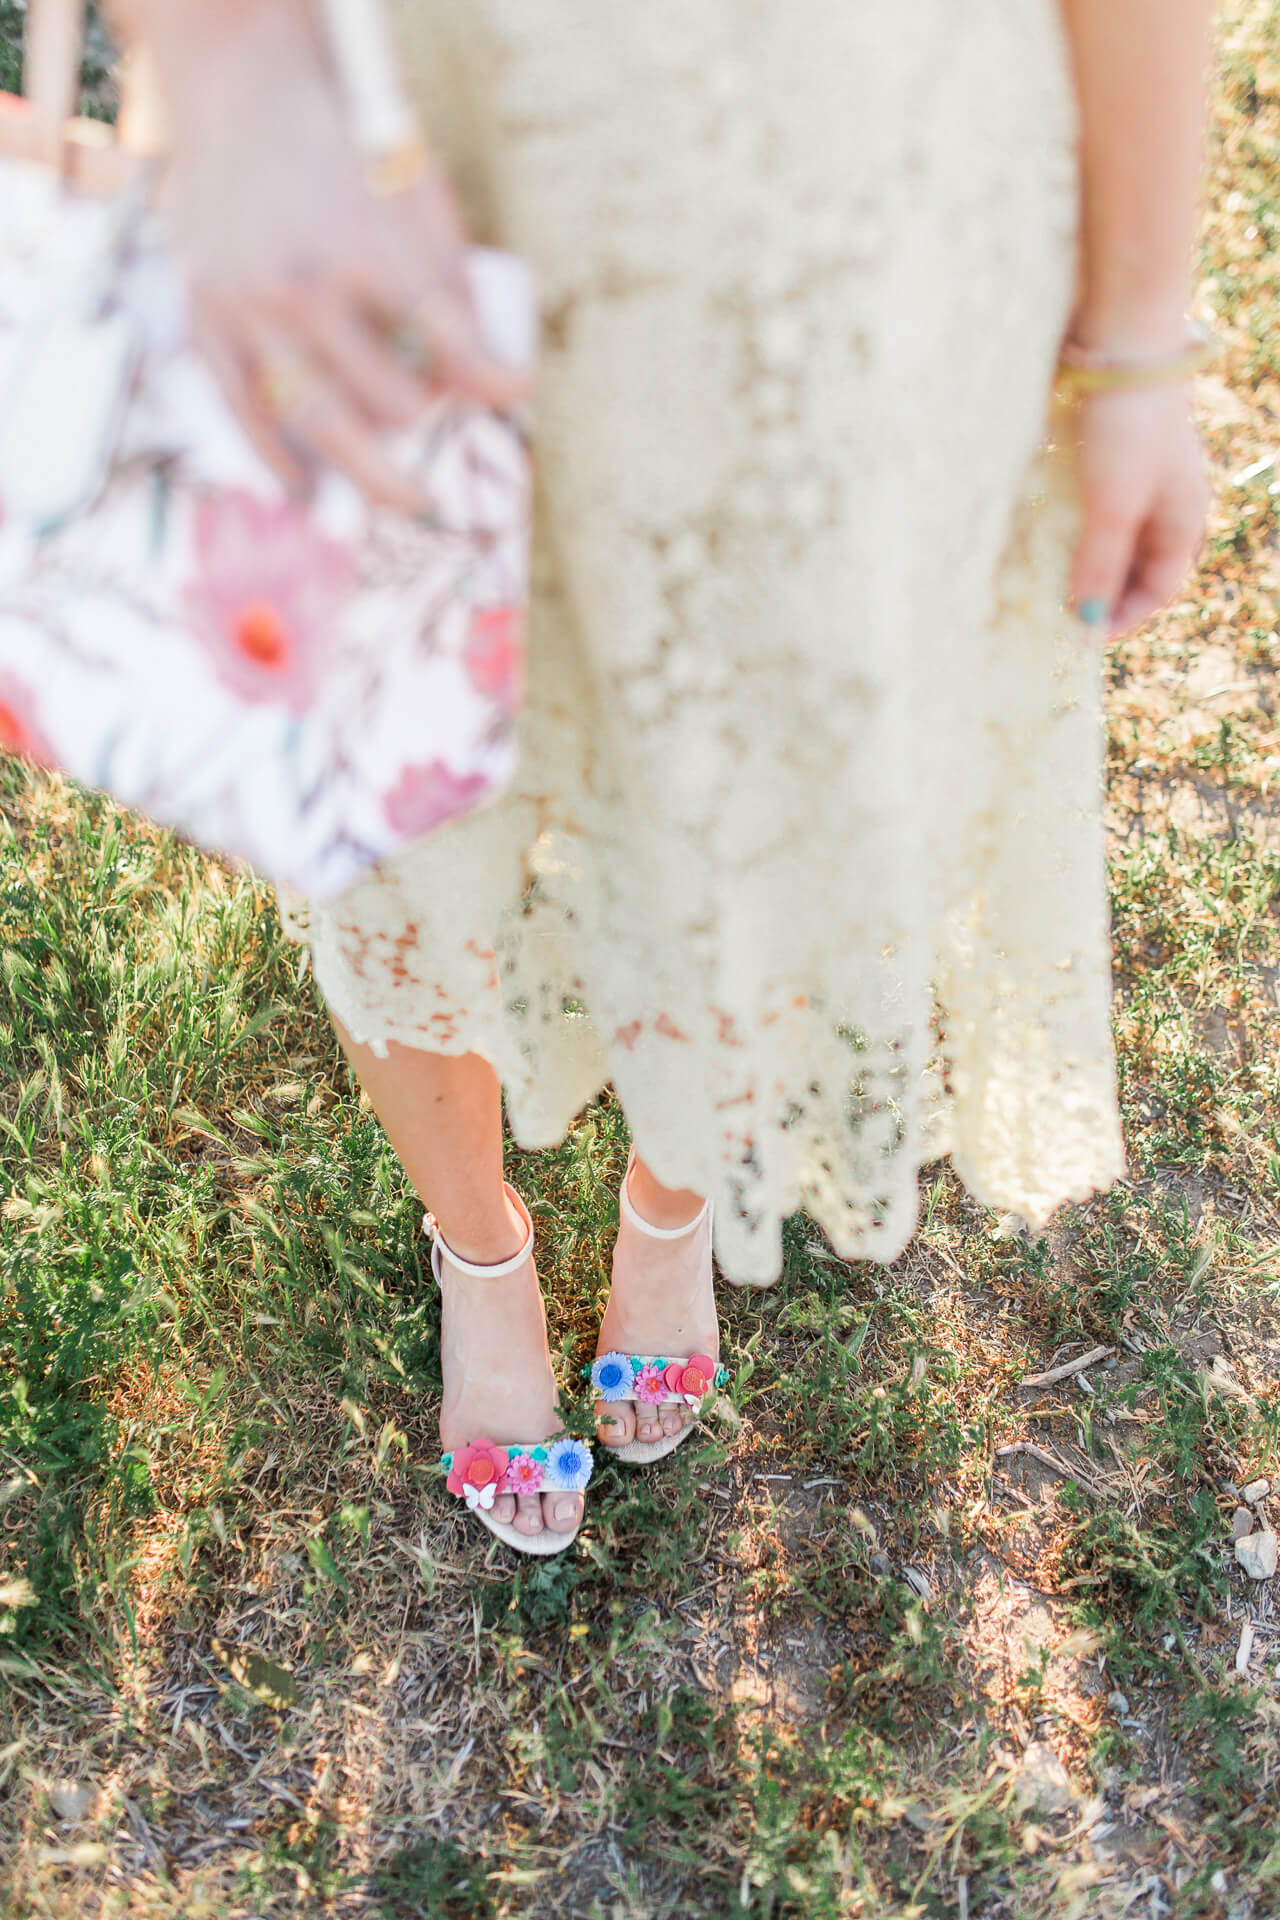 the cutes spring sandal heels from Kate Spade